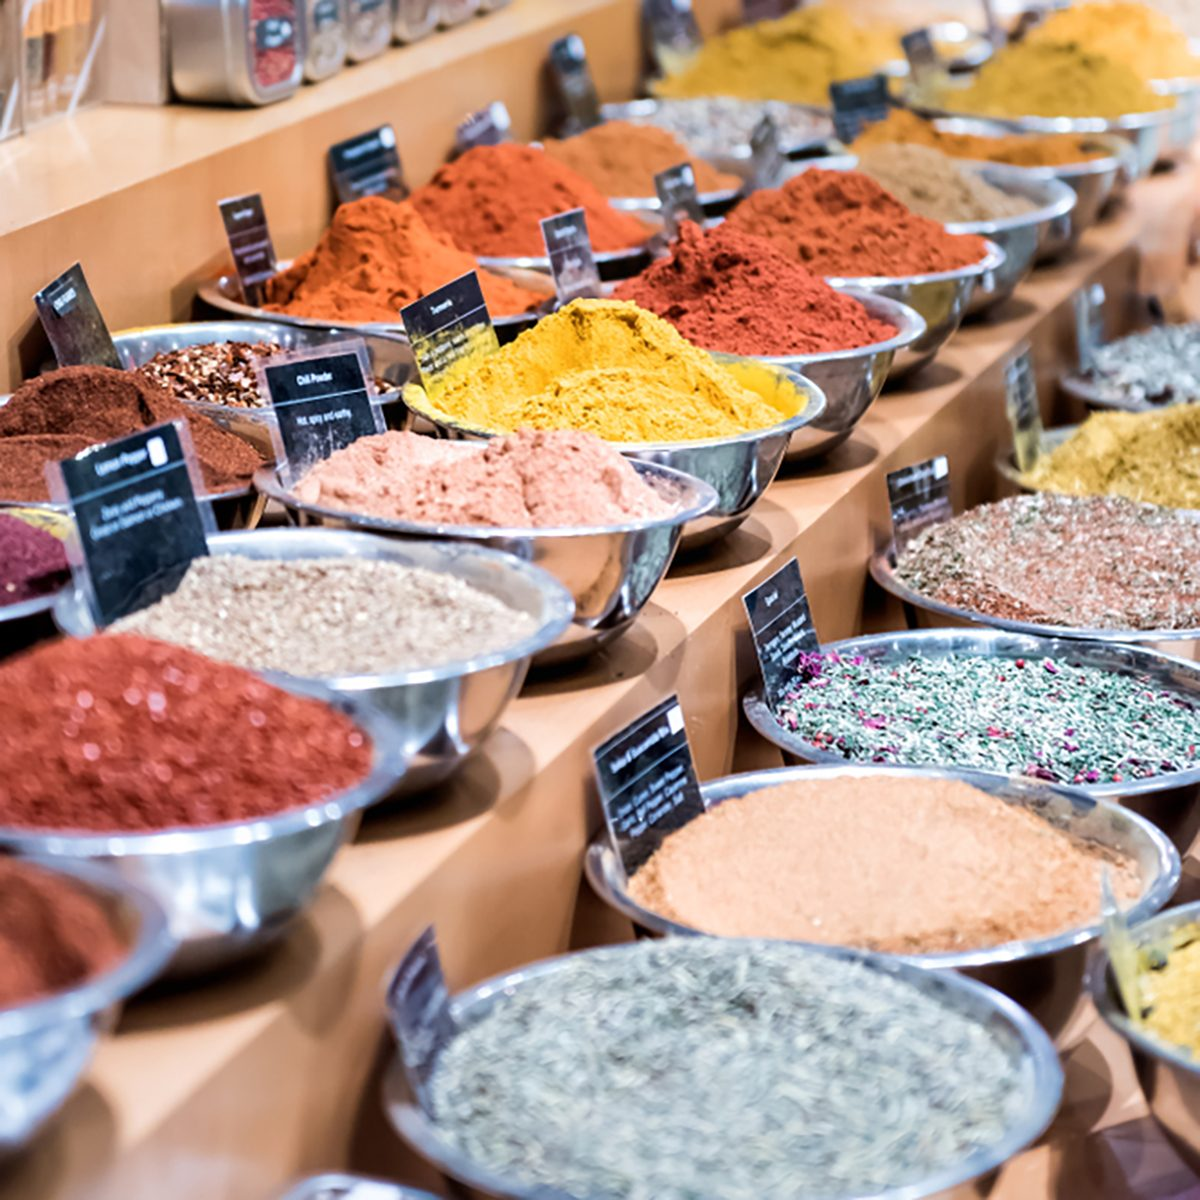 Many spices on display in bowls trays filled with herbs